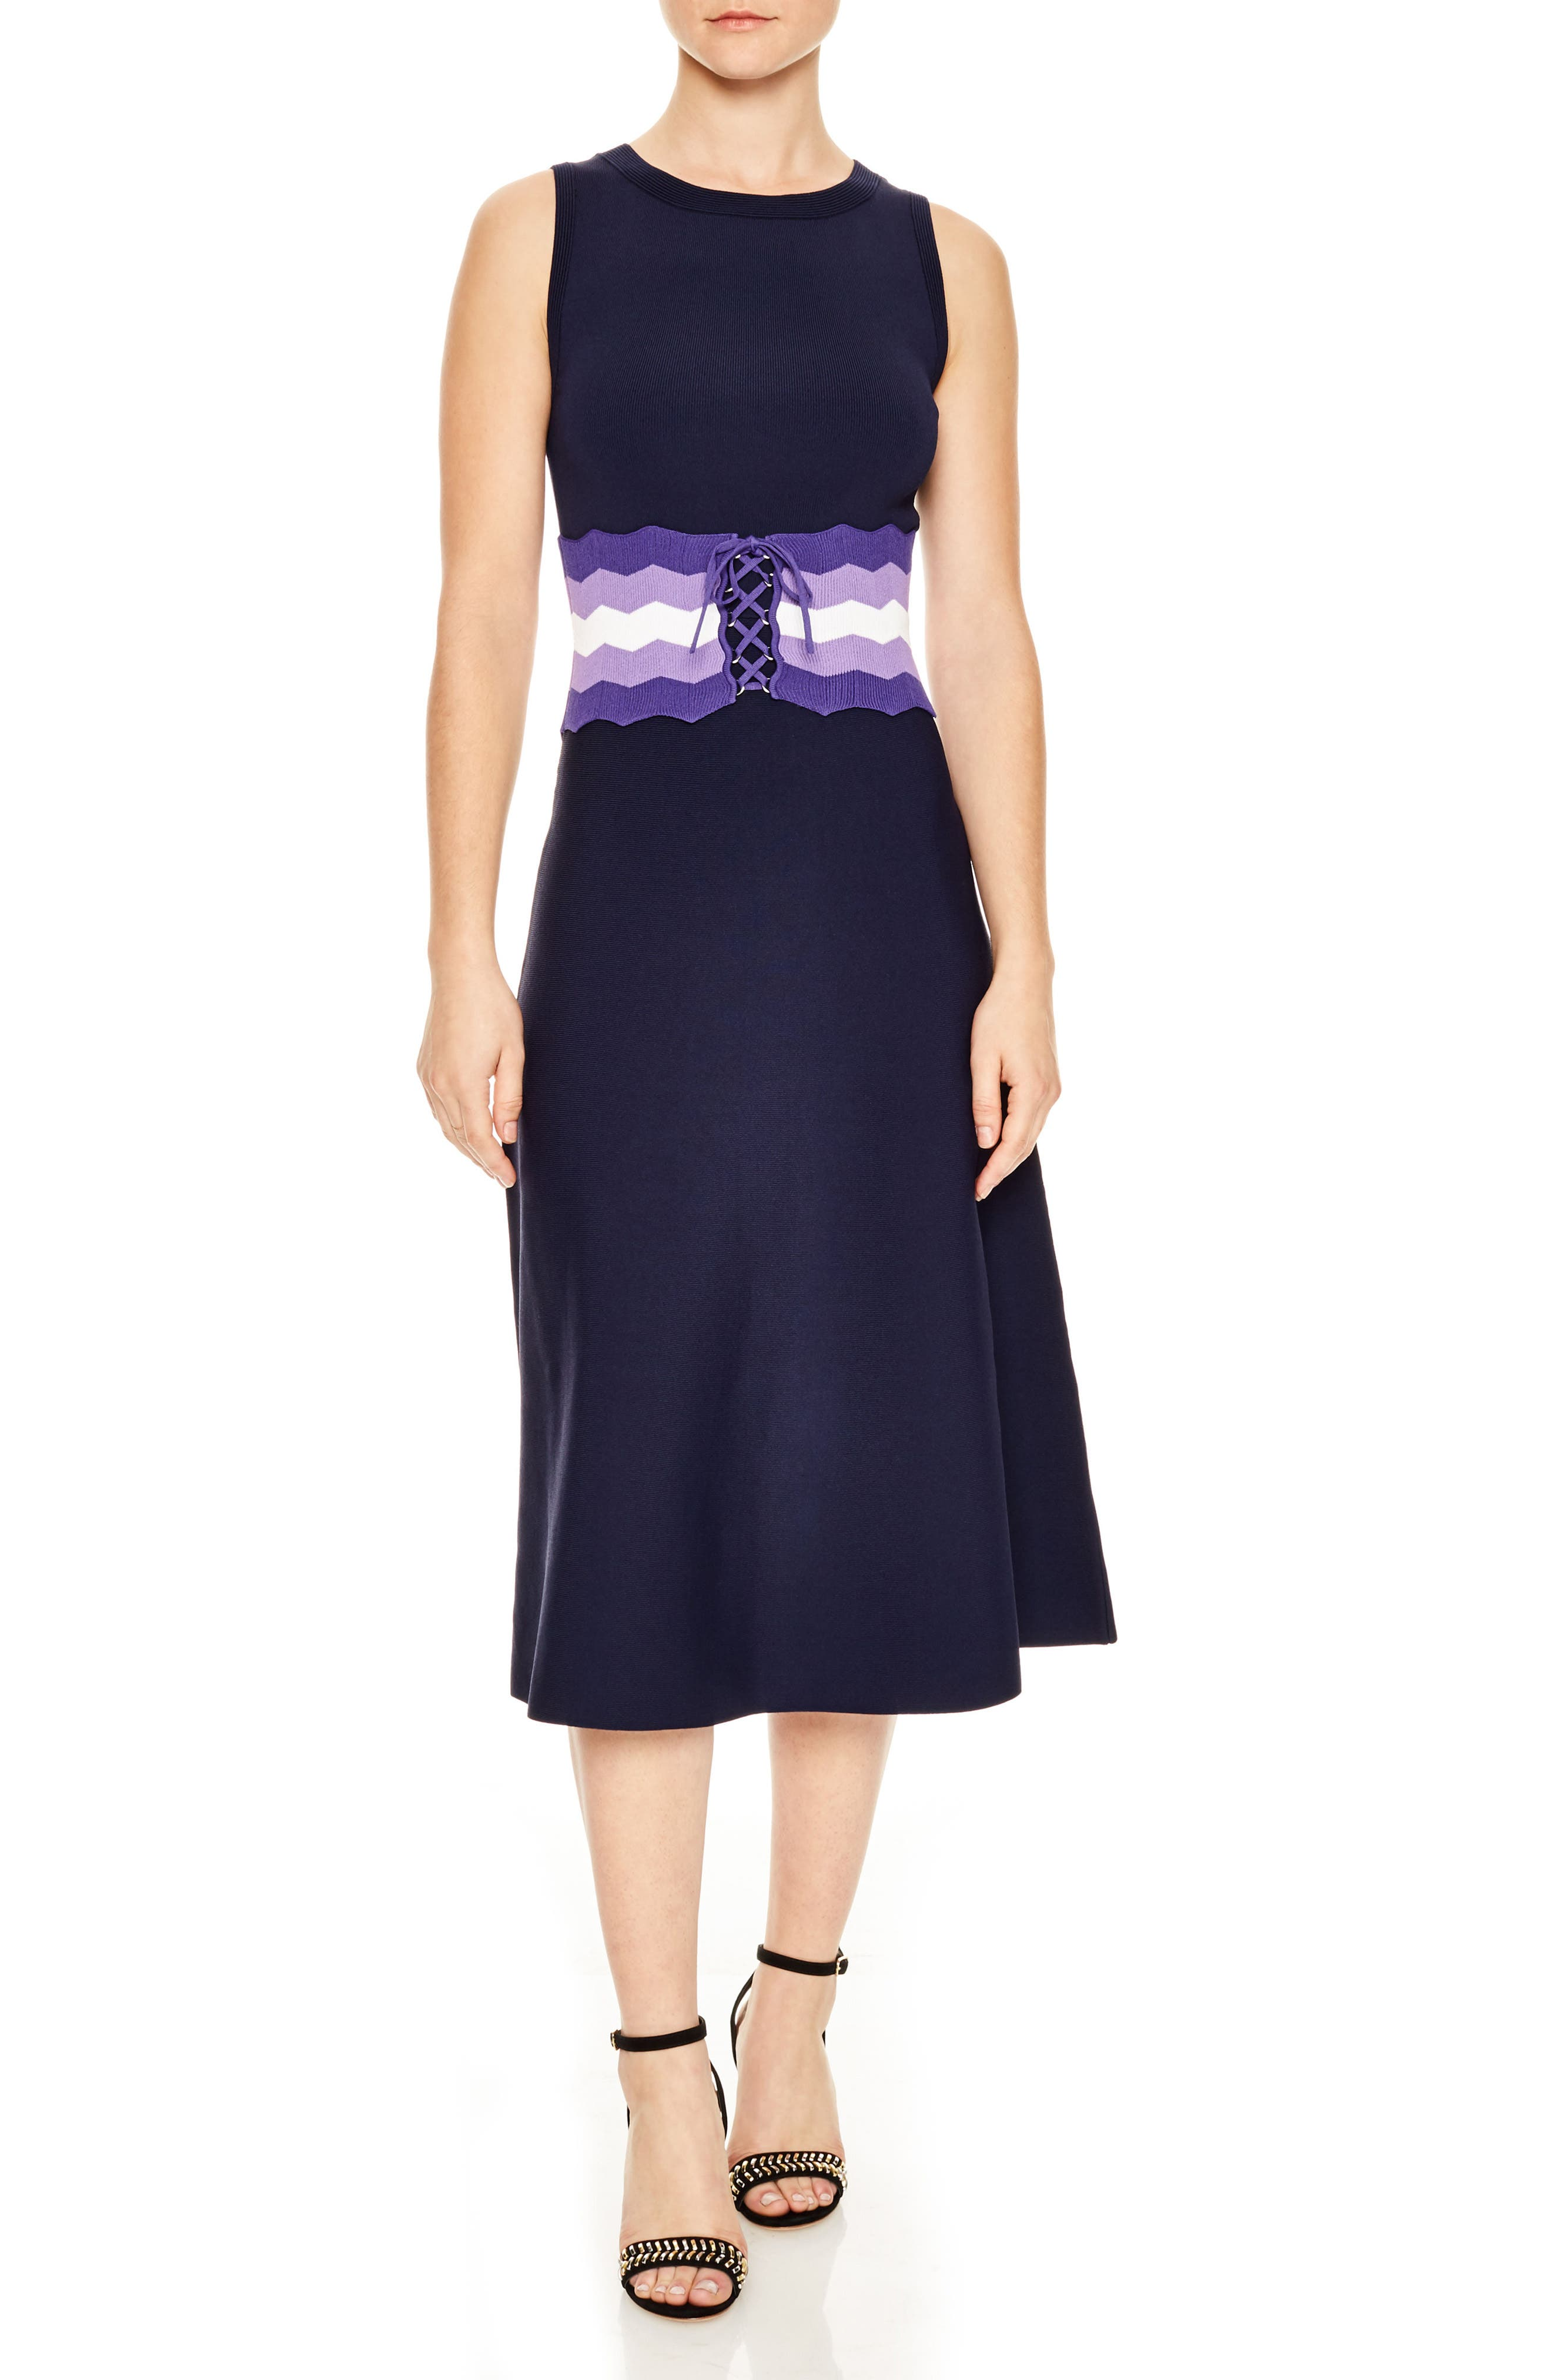 Belted Knit Midi Dress,                             Main thumbnail 1, color,                             Navy Blue